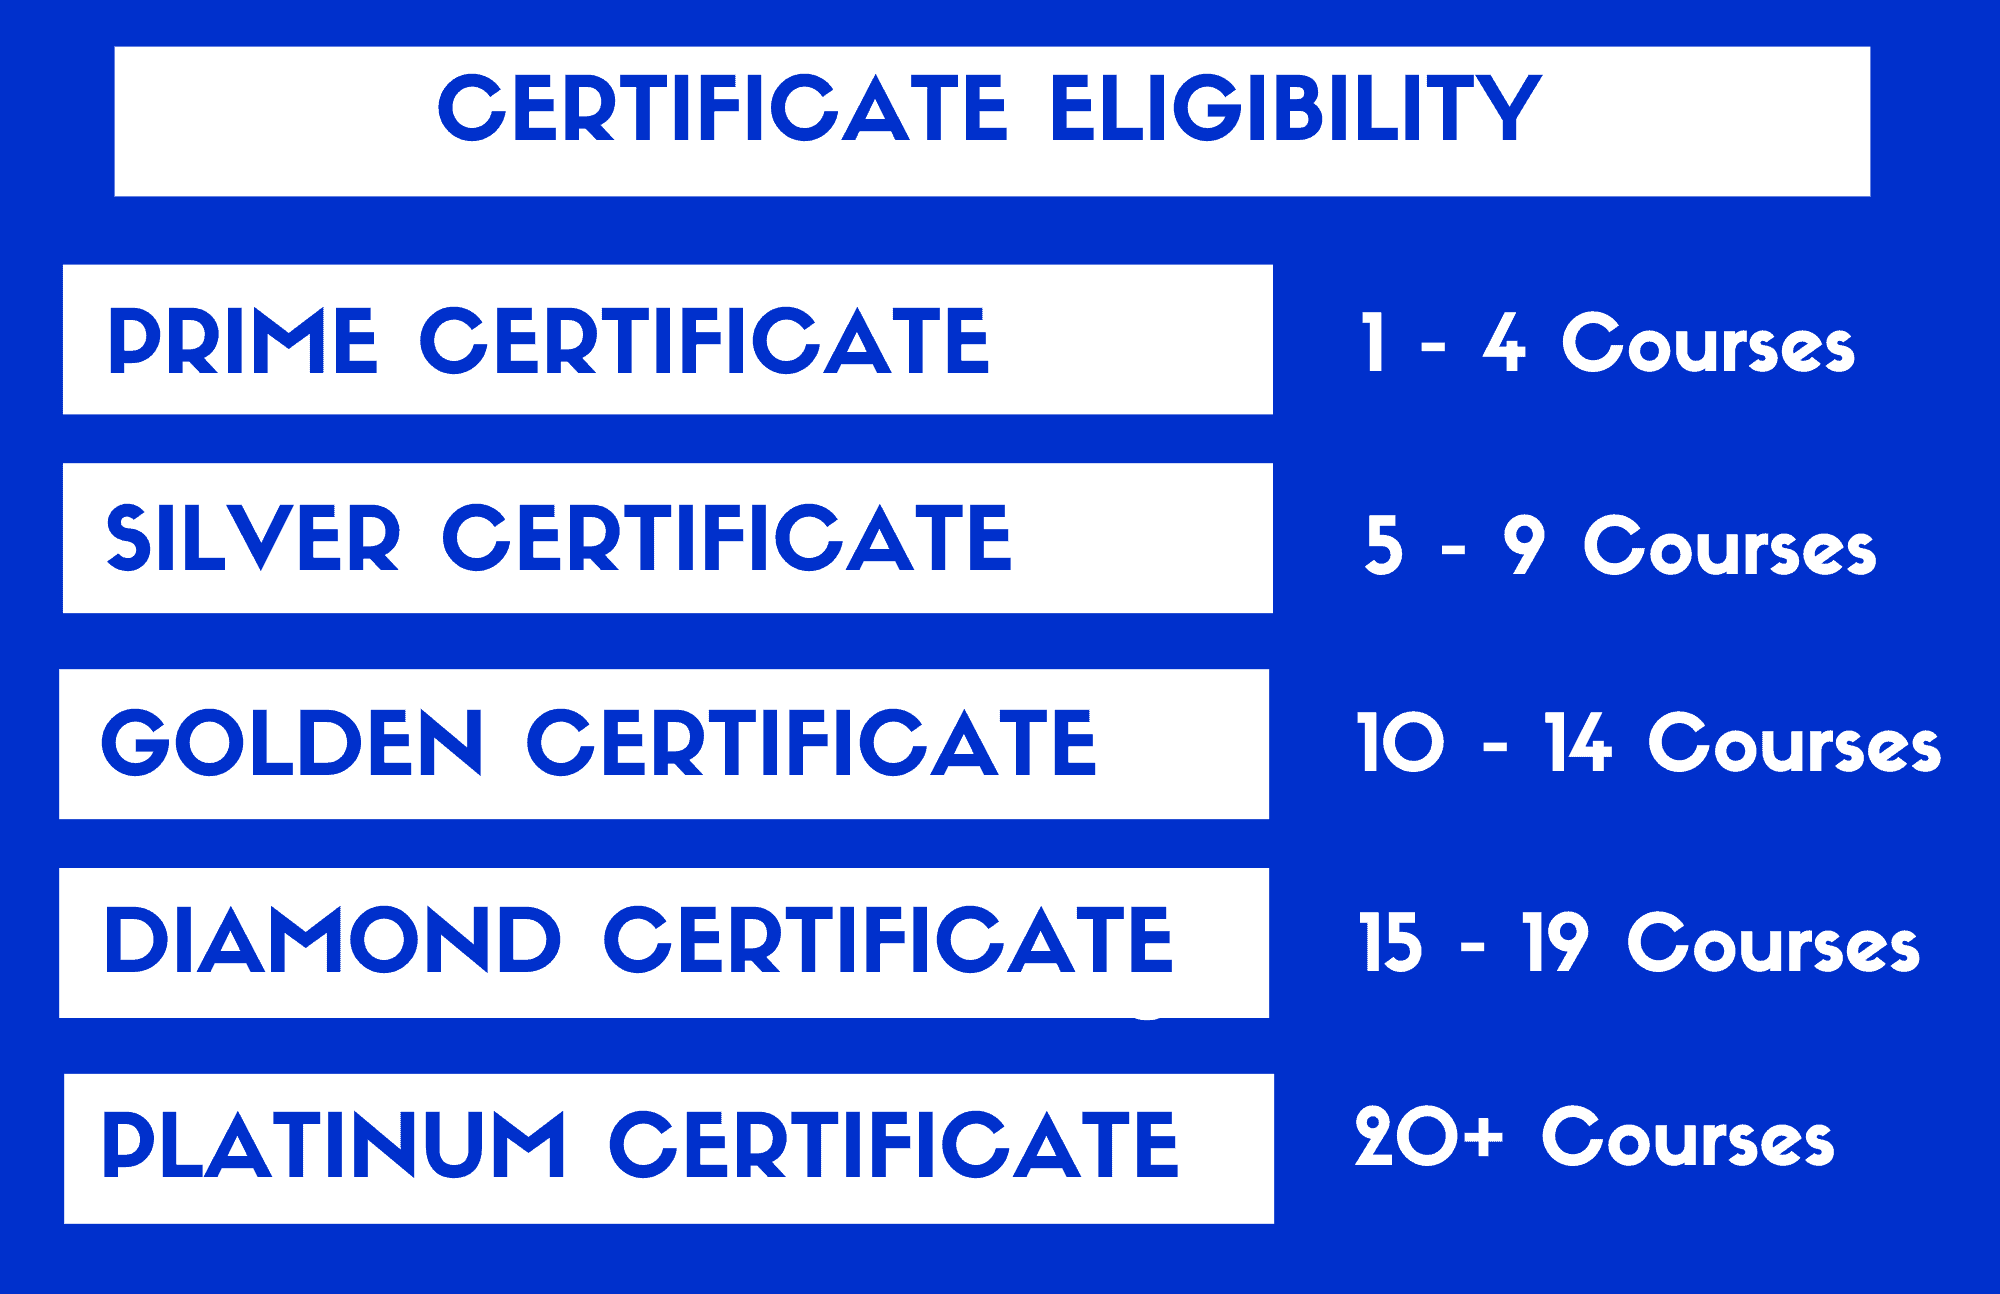 Certificate Eligibility